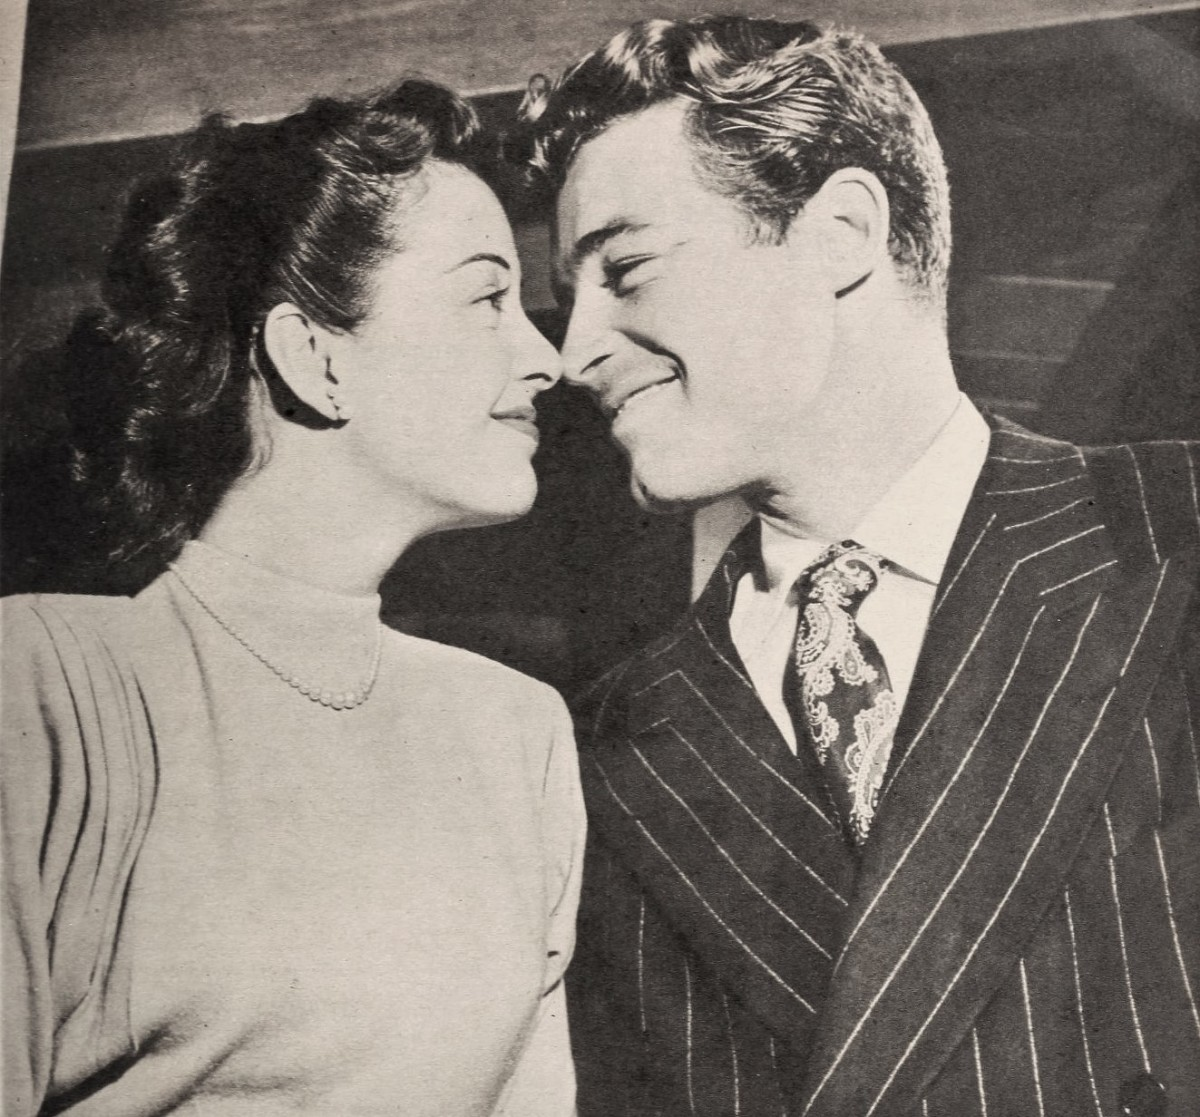 Gail Russell and Guy Madison, 1946.